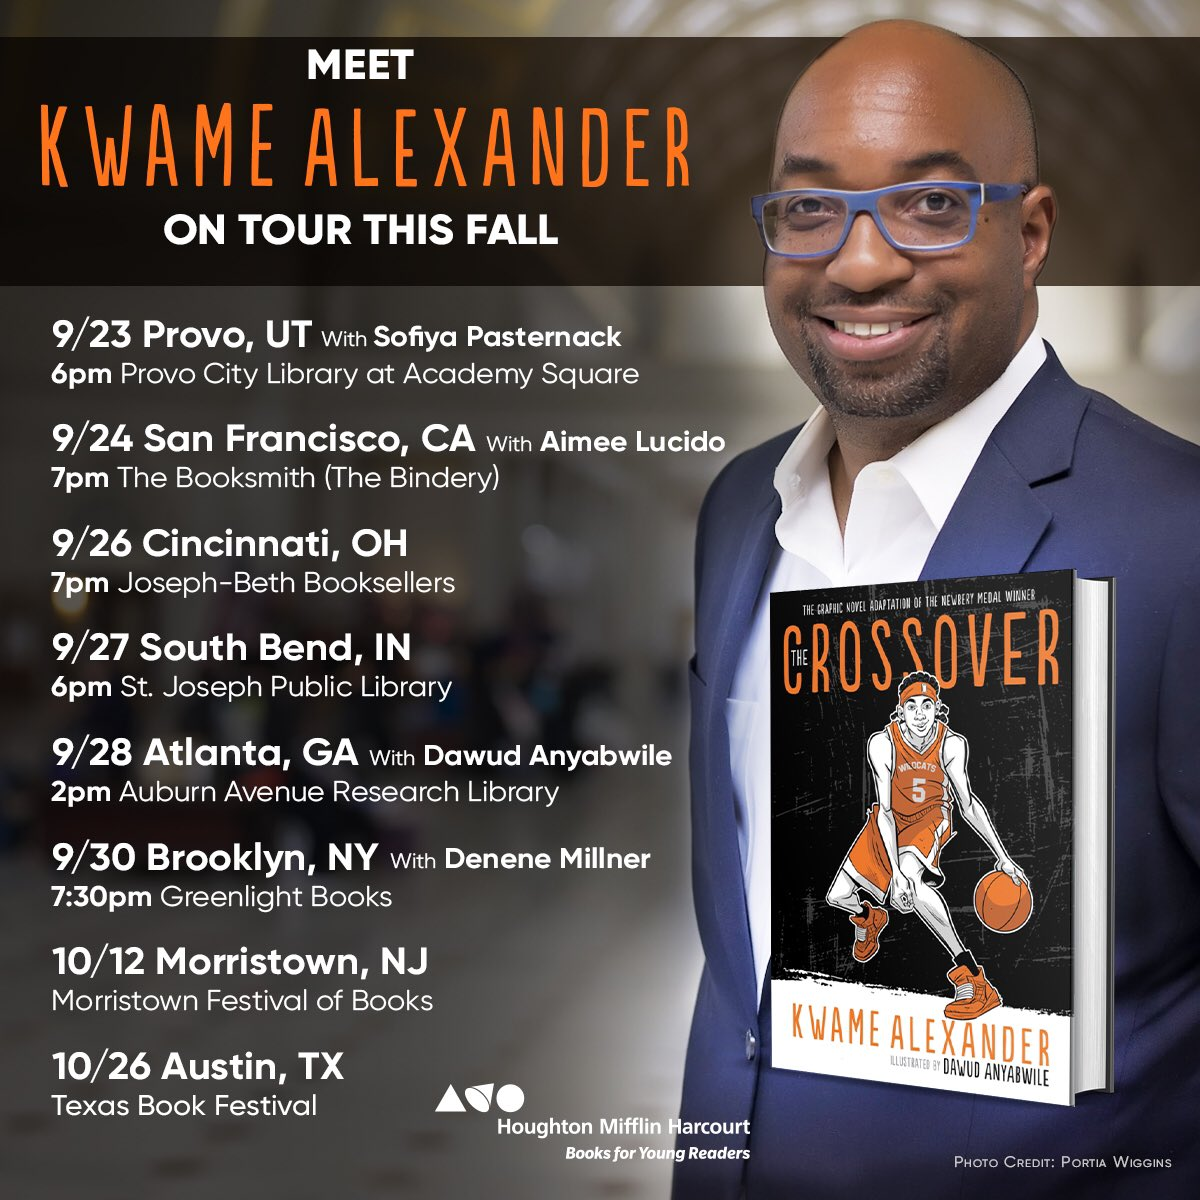 This London bloke is coming to America. Six week tour starts next week. Y'all ready? #TheUndefeated #HowToReadABook TheCrossover graphic novel. #Versify @HMHKids @HarperChildrens